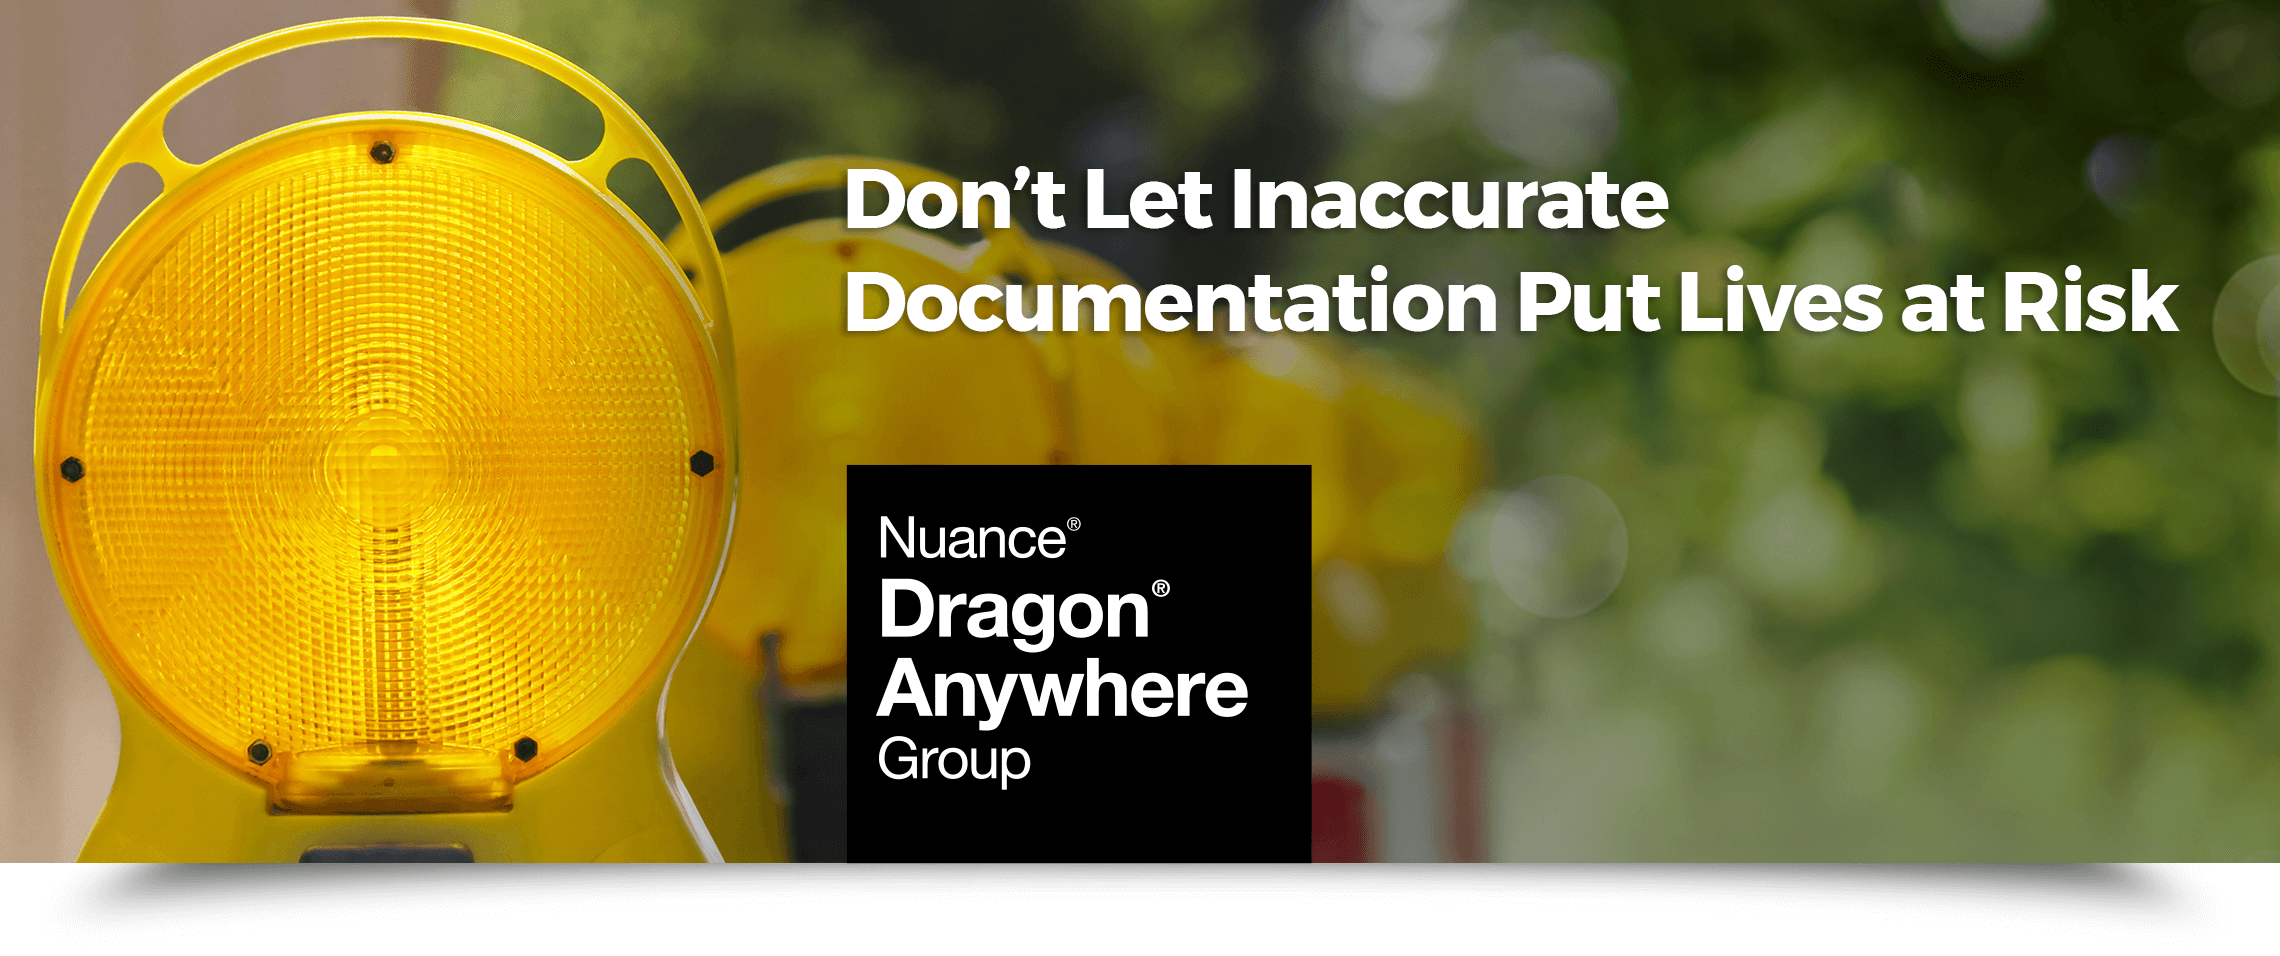 Don't let accurate documentation put lives at risk - Dragon Anywhere Group